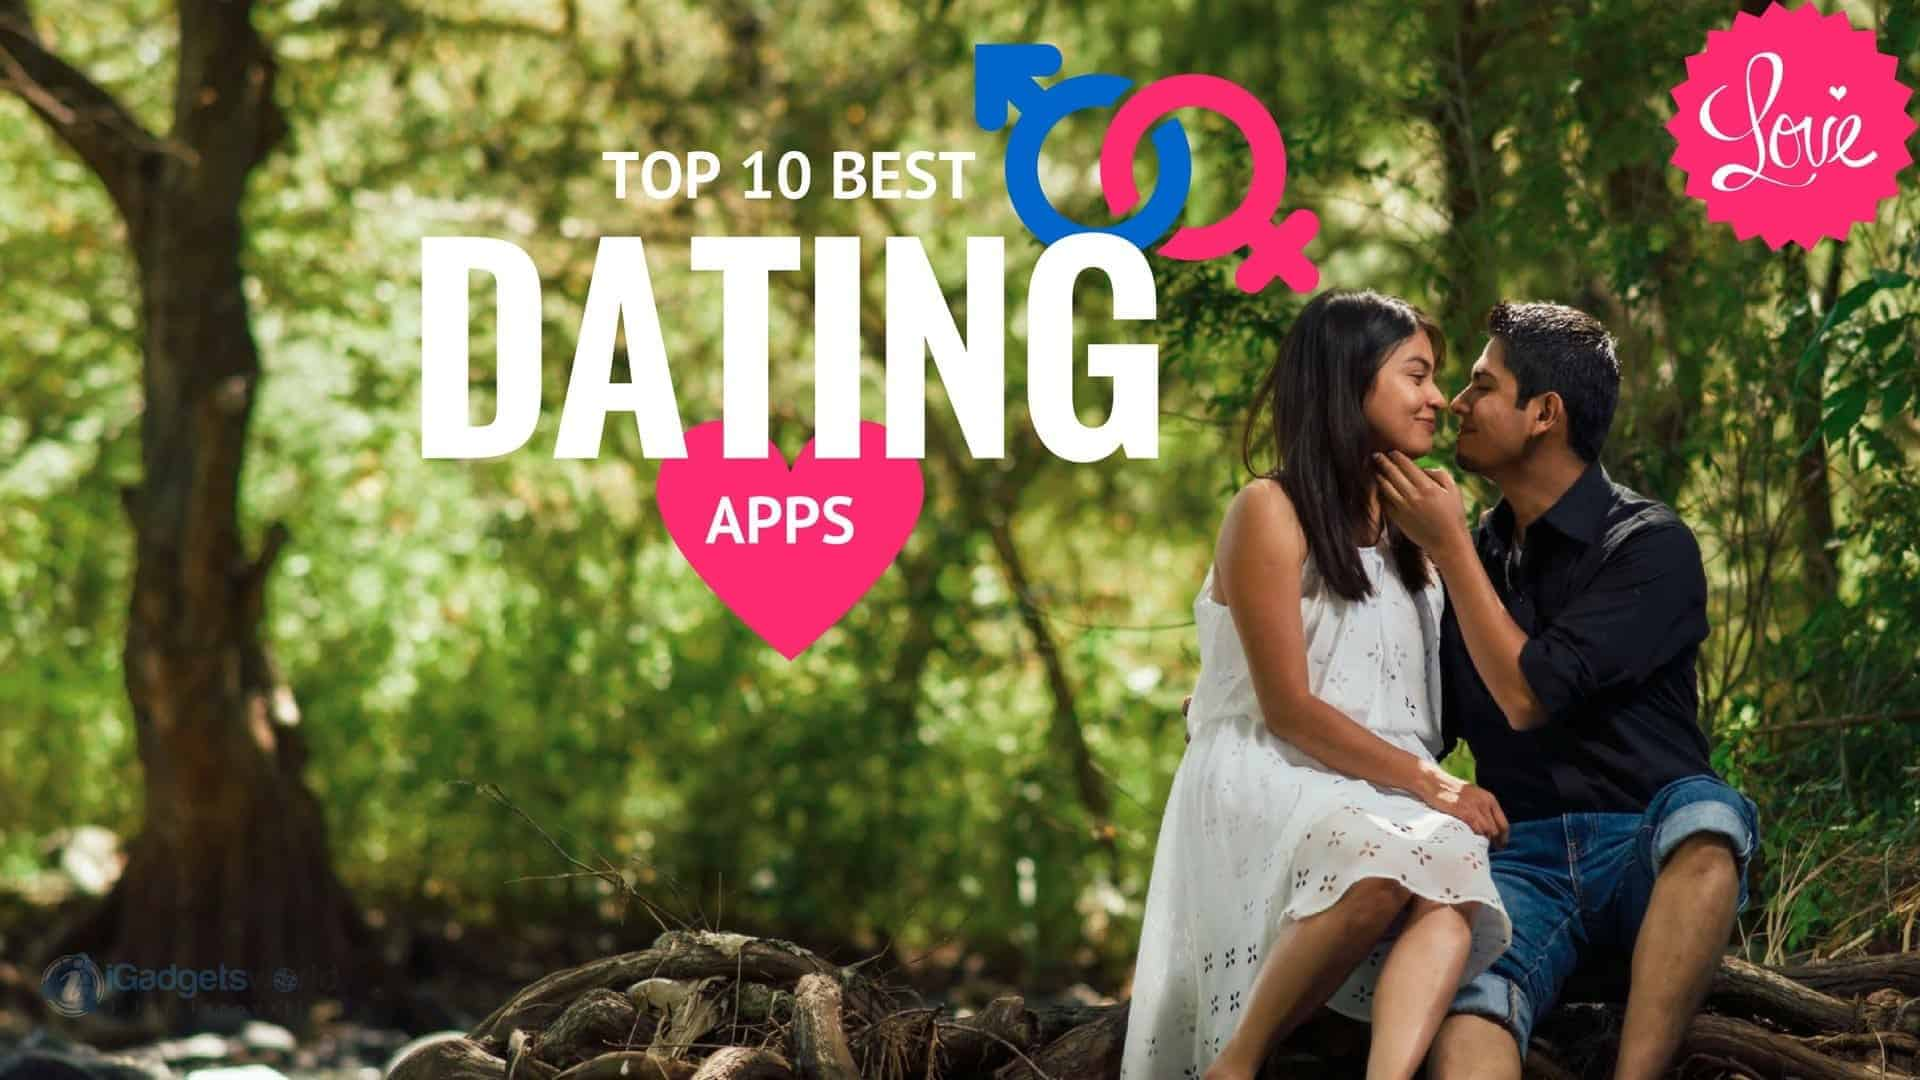 What are best dating apps